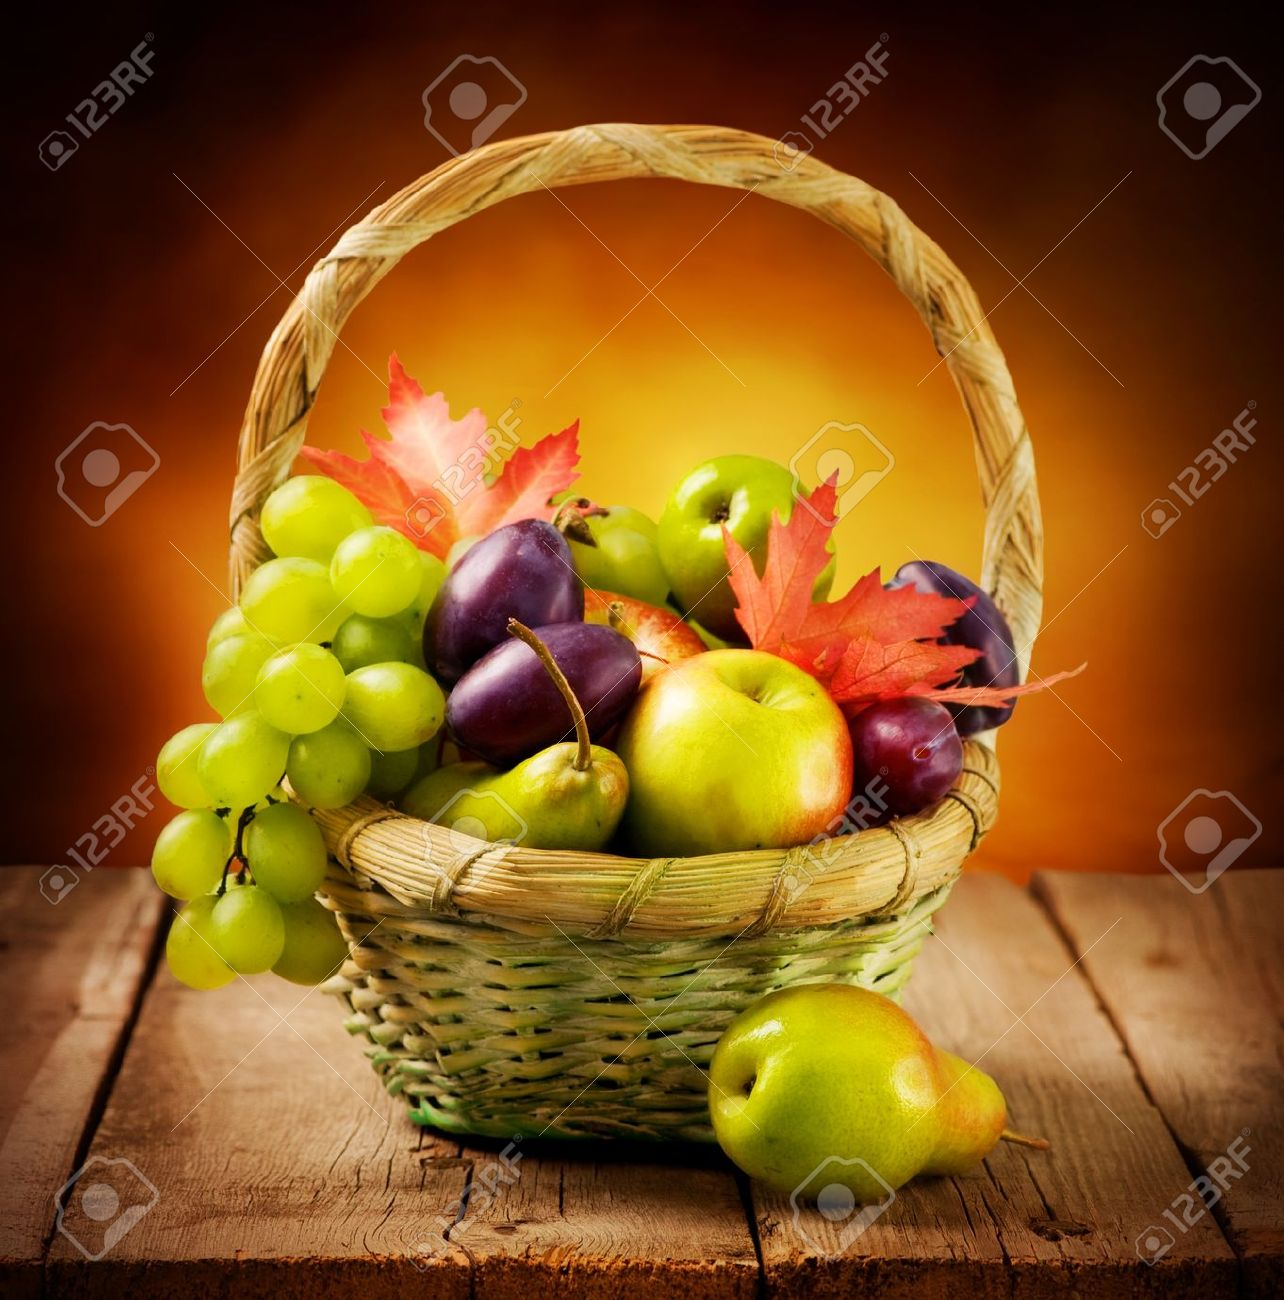 Organic ripe fruits Stock Photo - 10688976